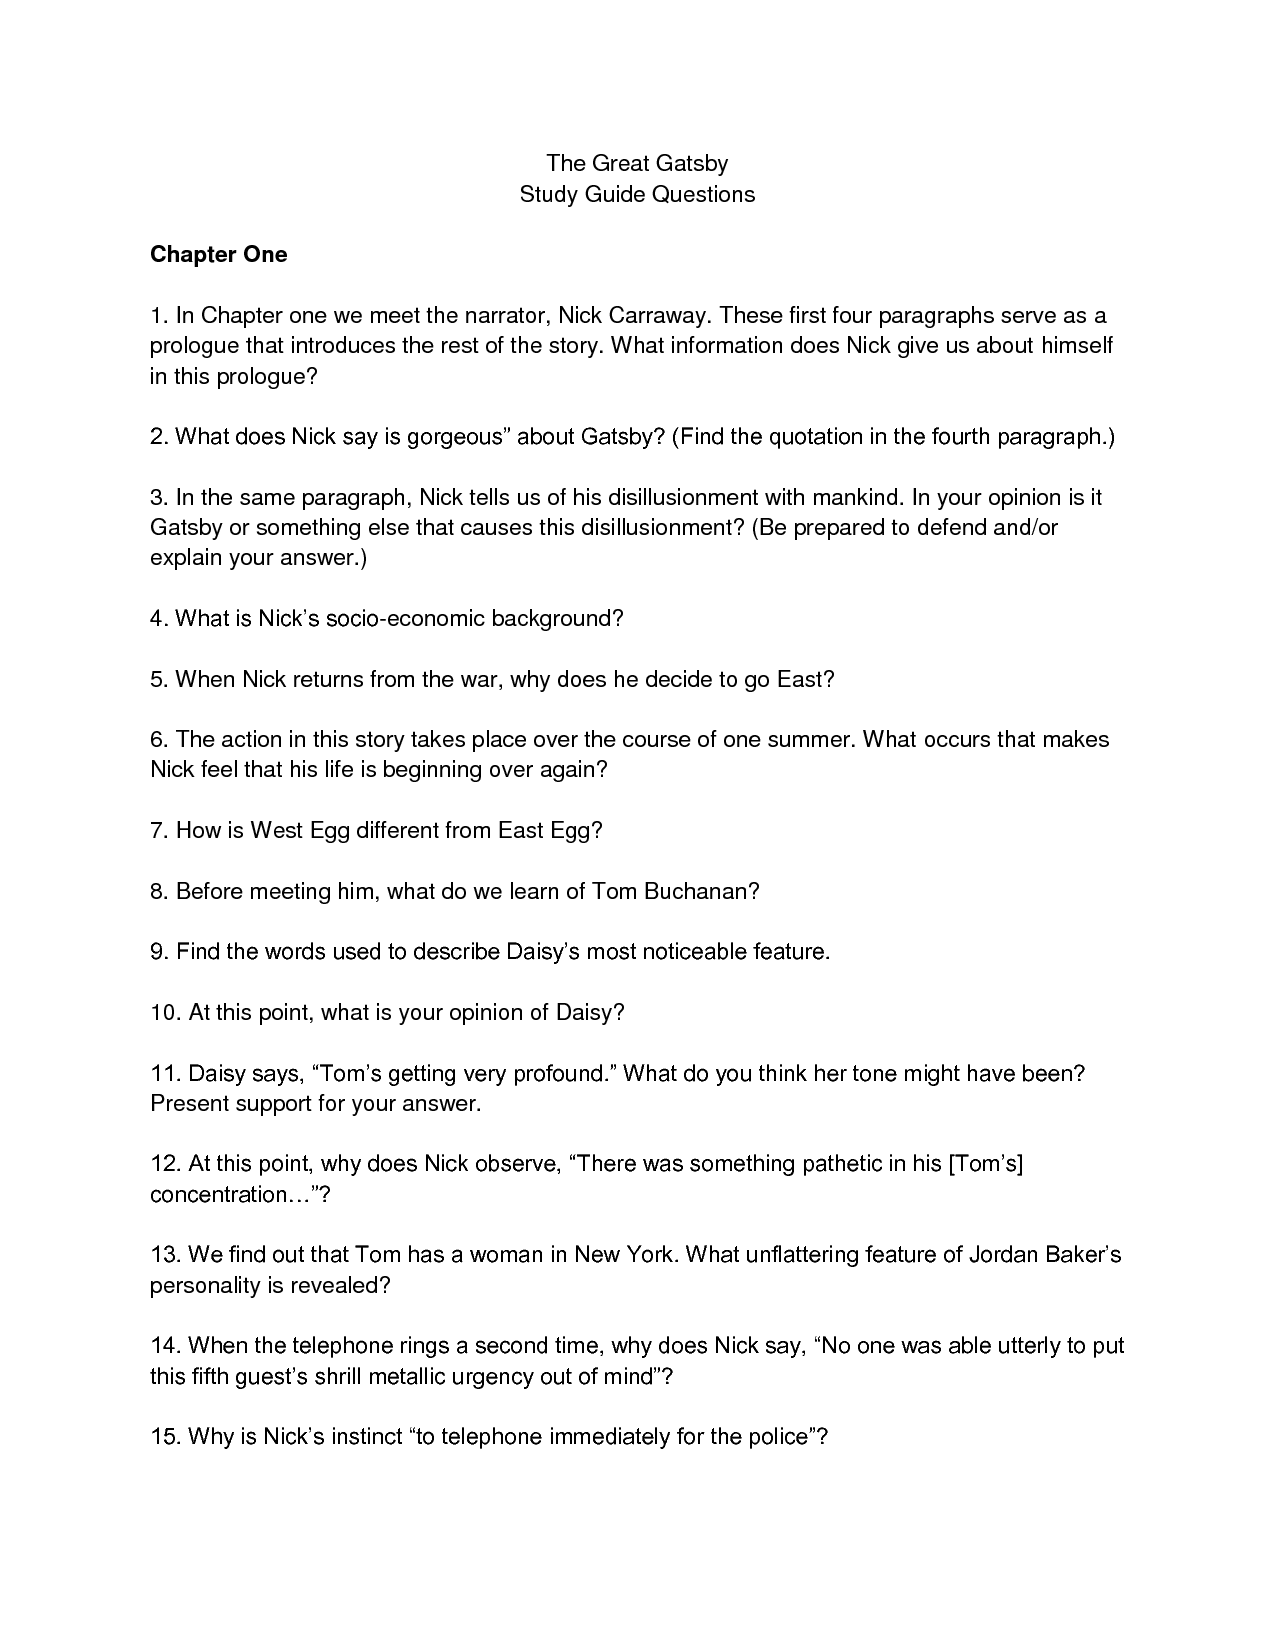 to kill a mockingbird pdf questions and answers